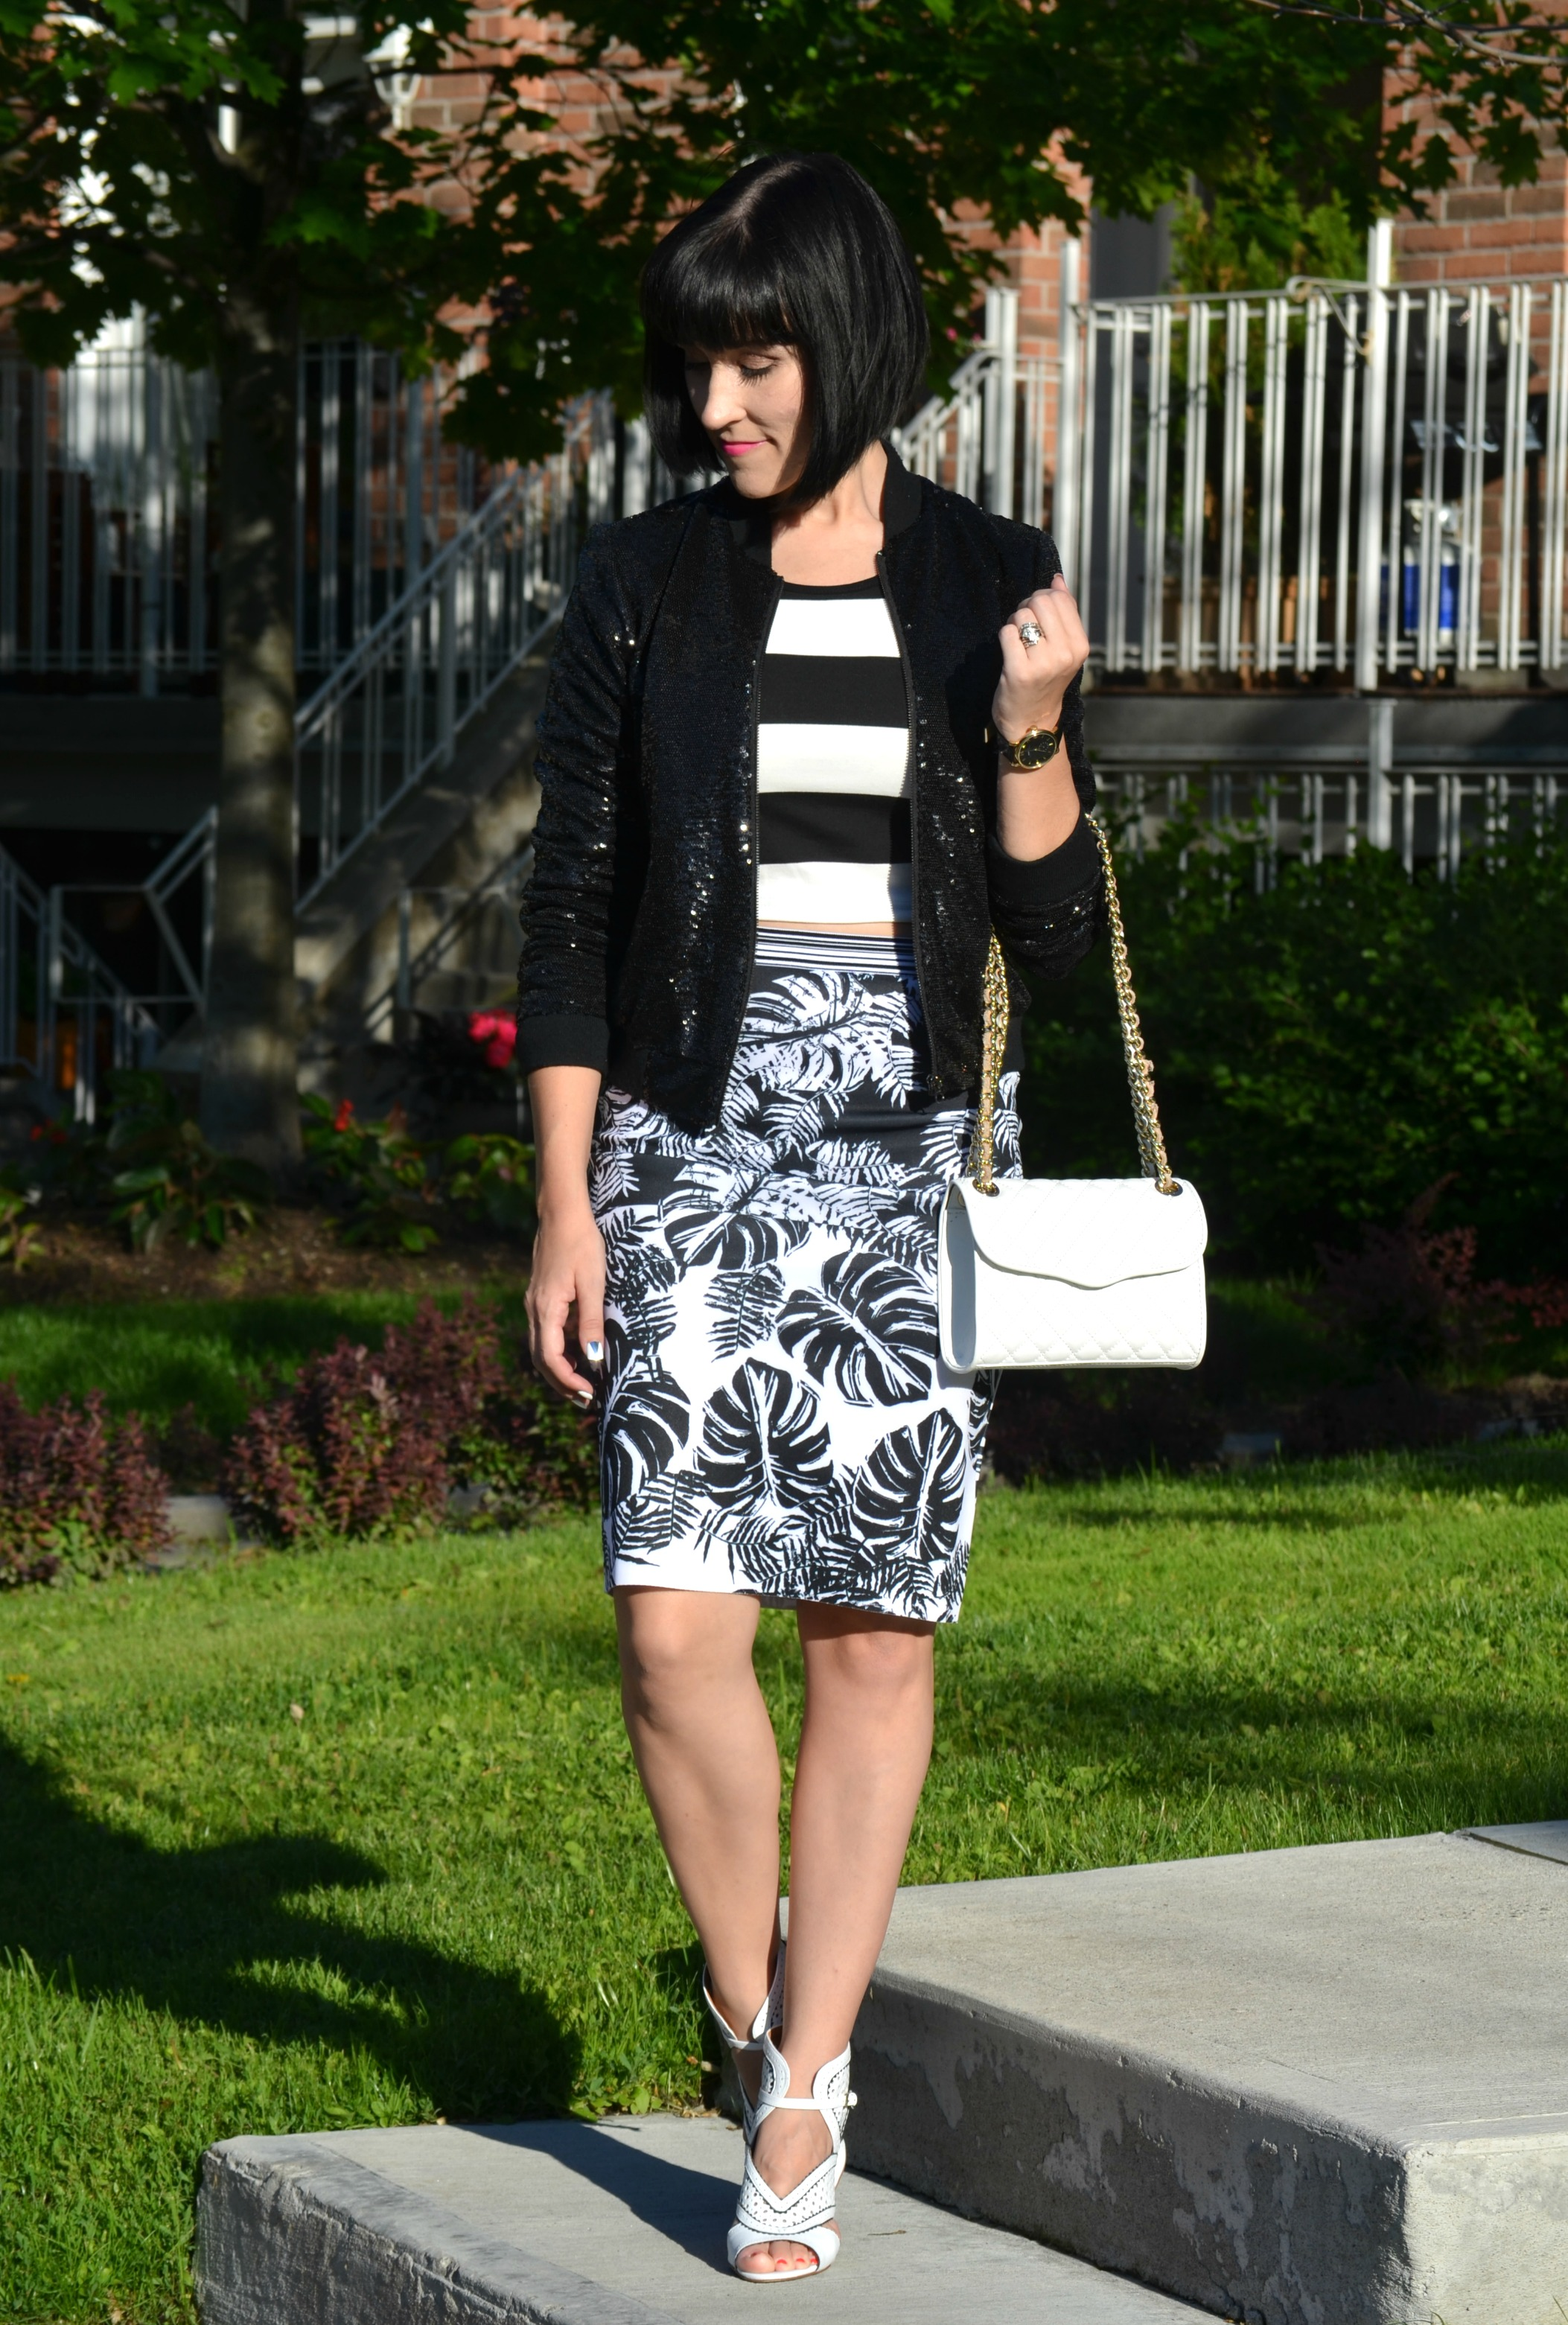 What I Wore, Canadian fashionista, Gerry weber giveaway, Sequins Jacket, guess jacket, Sheinside top, Gerry weber, Rebecca Minkoff Purse, Shopbop purse, nine west white heels